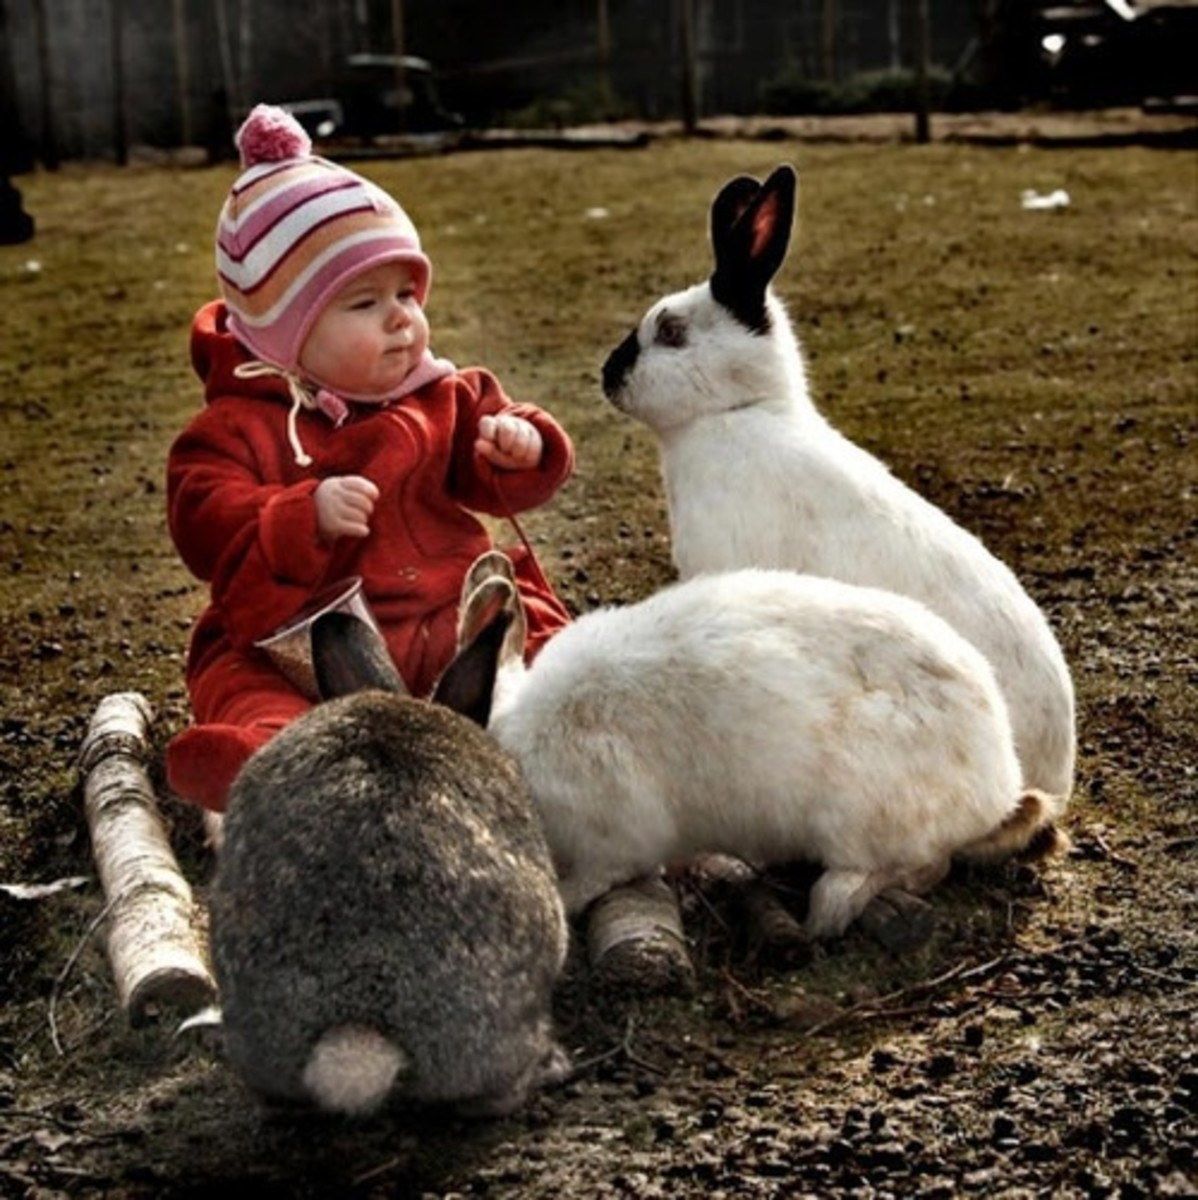 Cute baby and Himalayan Rabbit.